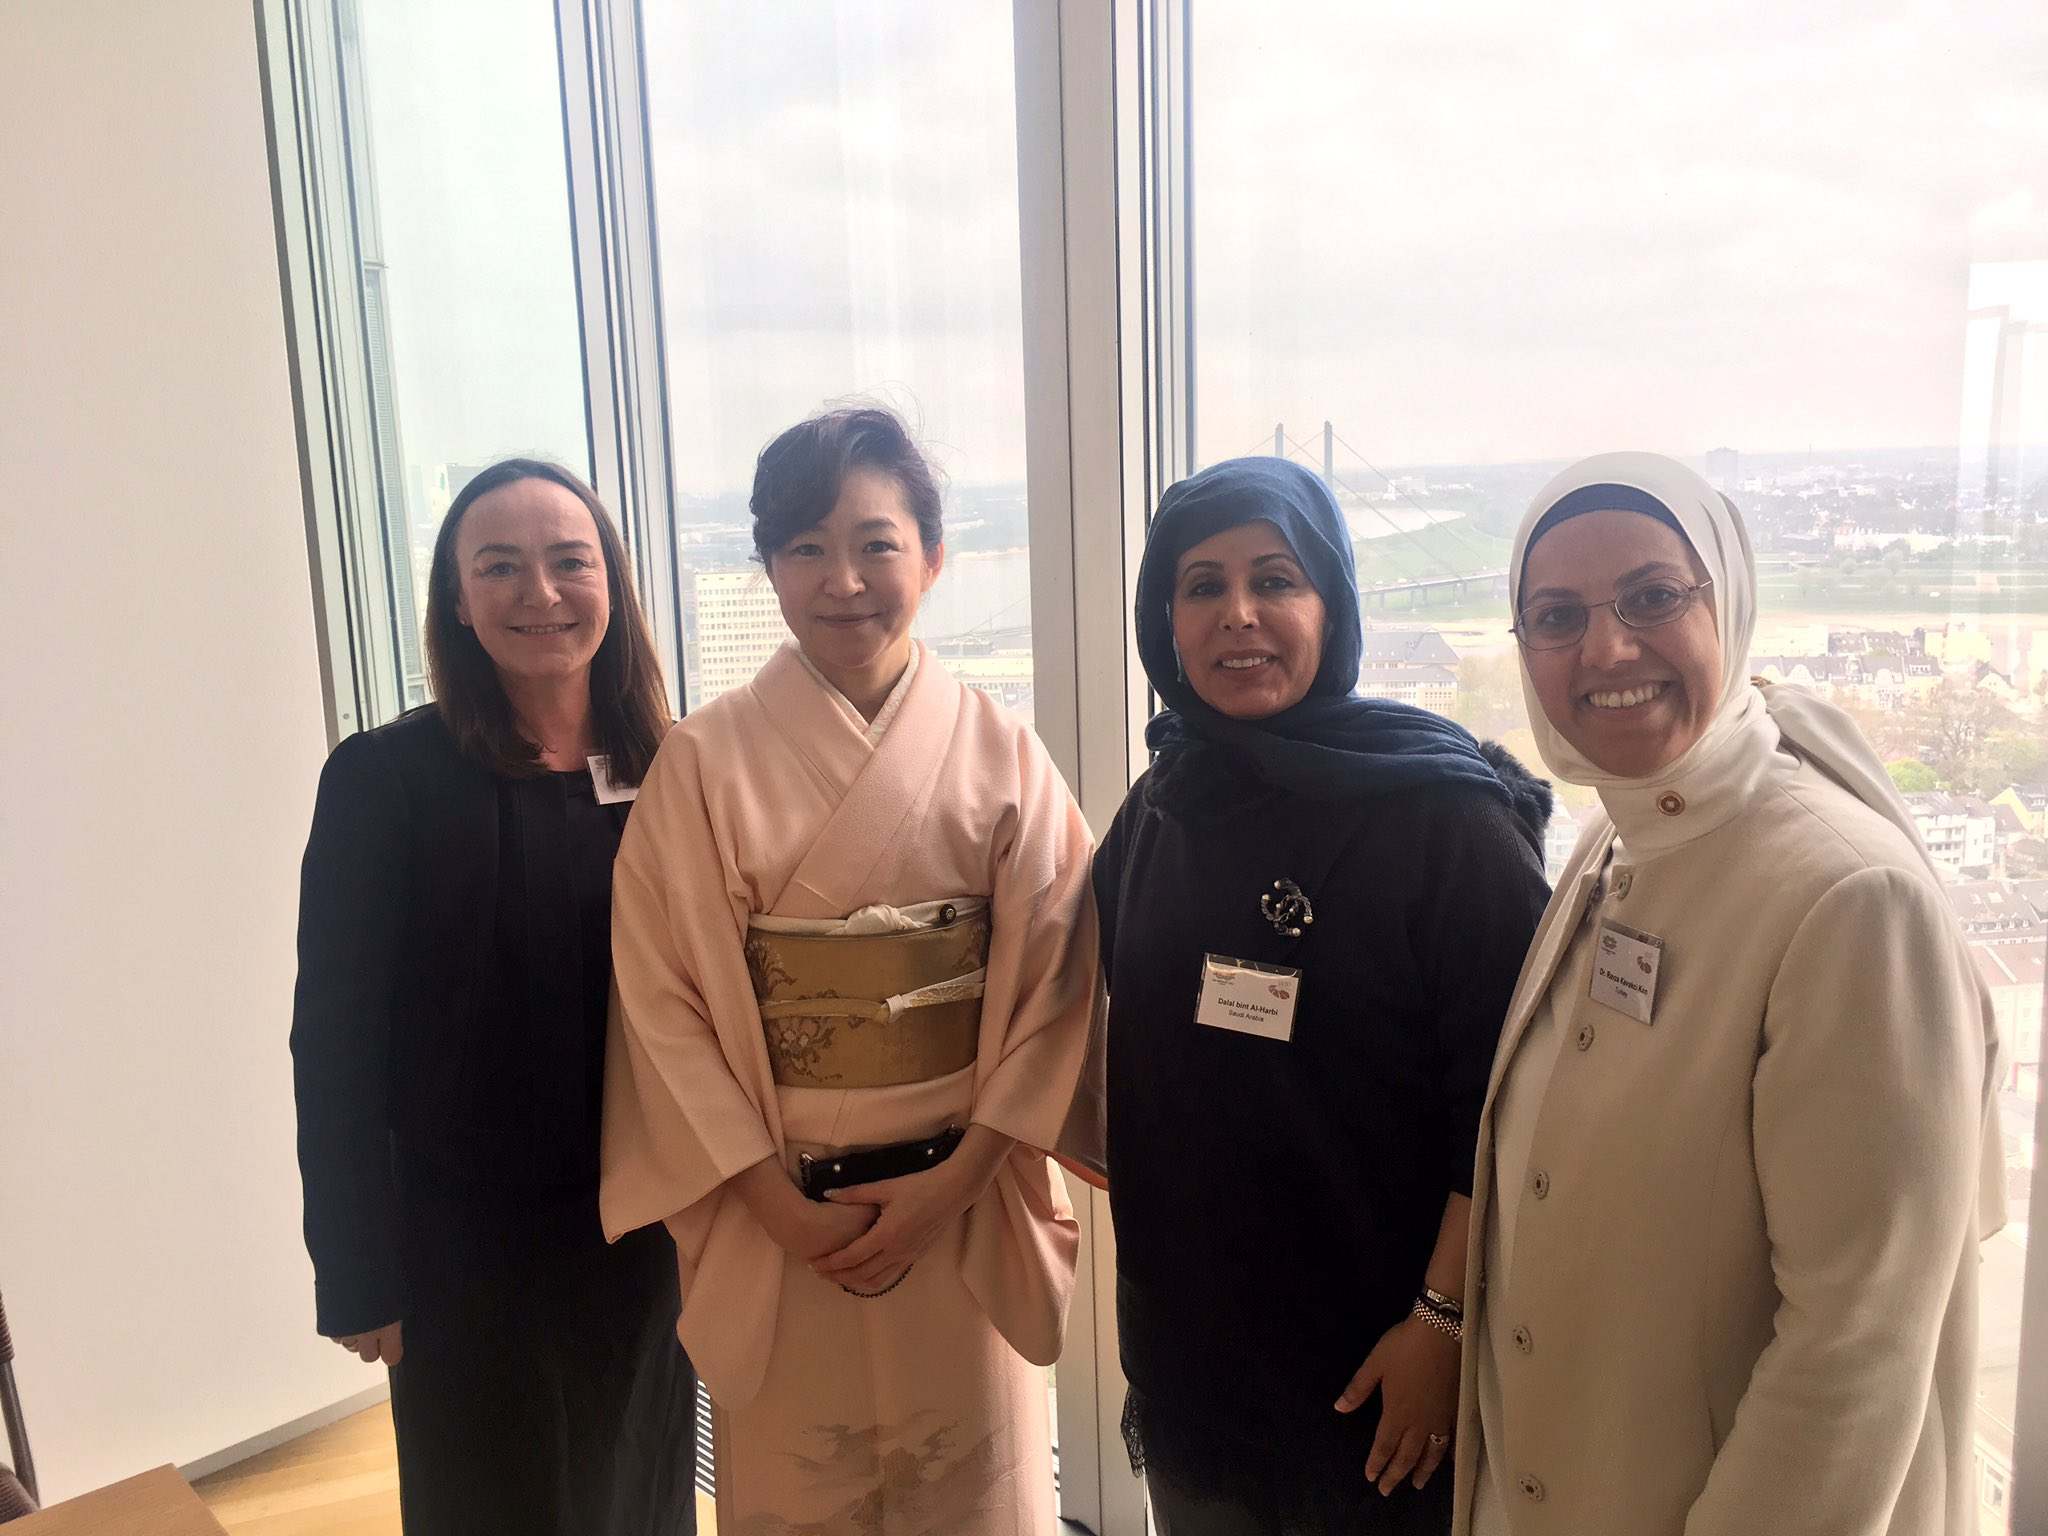 Enjoying the view from EY office in Düsseldorf with #womeninpolitics from Japan, Saudi Arabia and Turkey at #G20Digital roundtable https://t.co/f4HIMyyckR